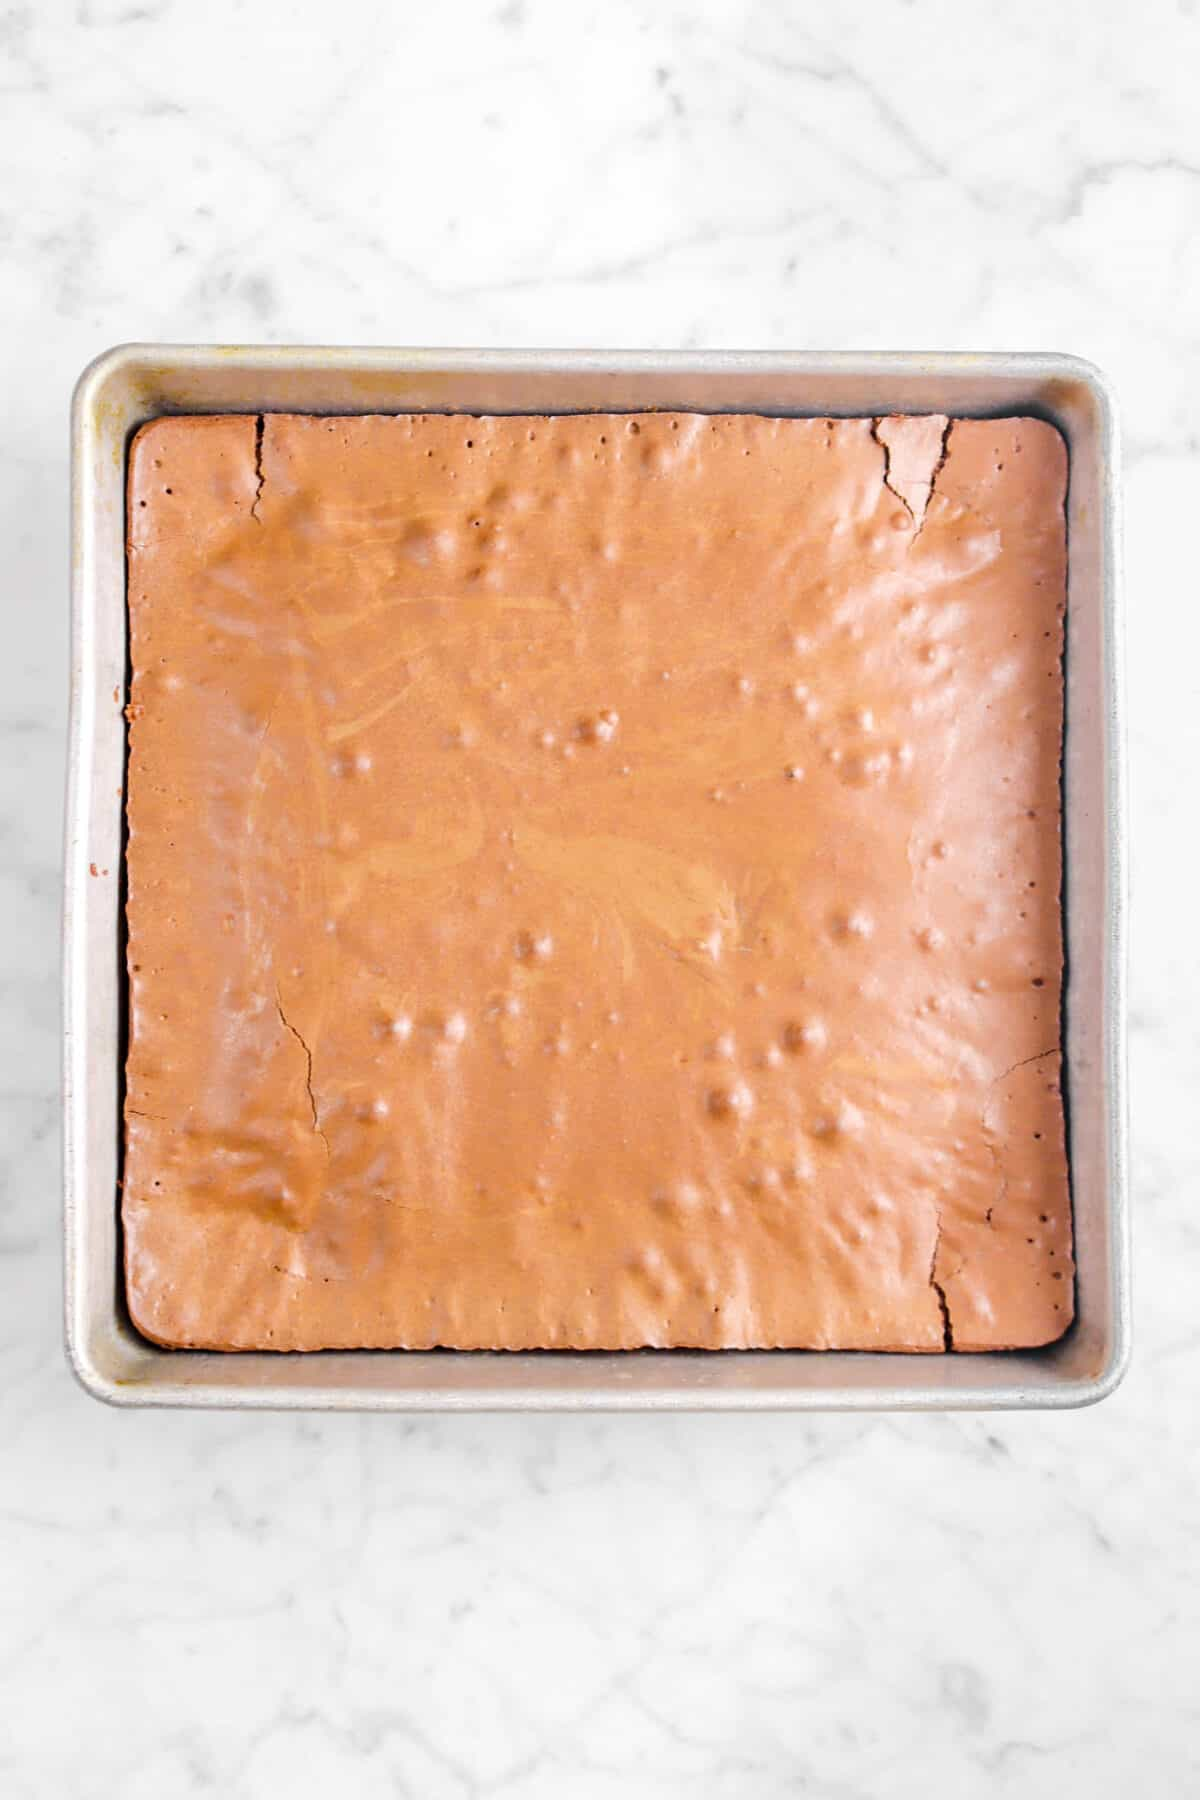 baked brownies in a square pan